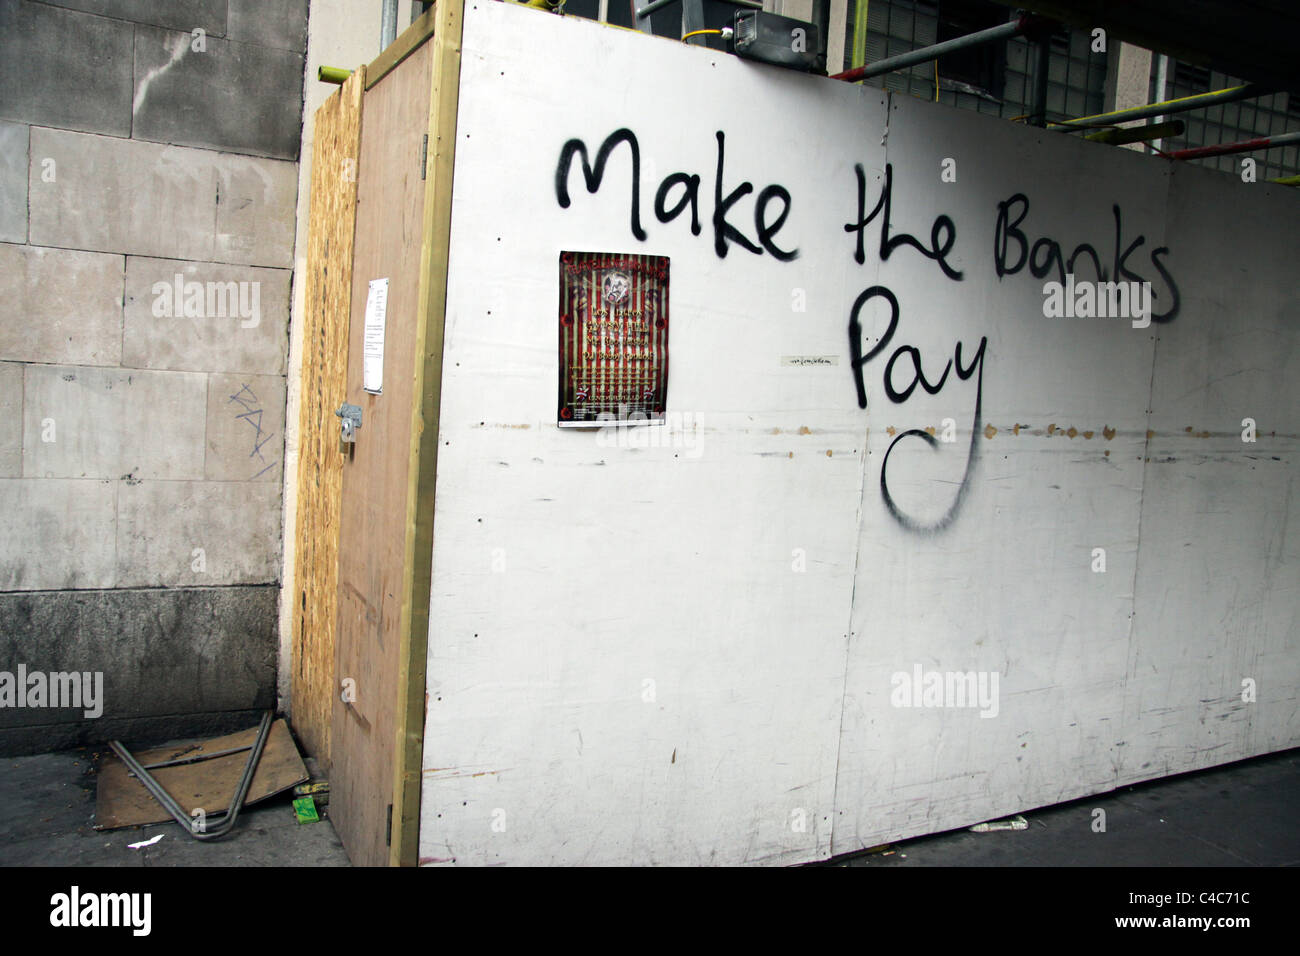 Anti-capitalist graffiti in London demanding the banks pay for the large national deficit - Stock Image